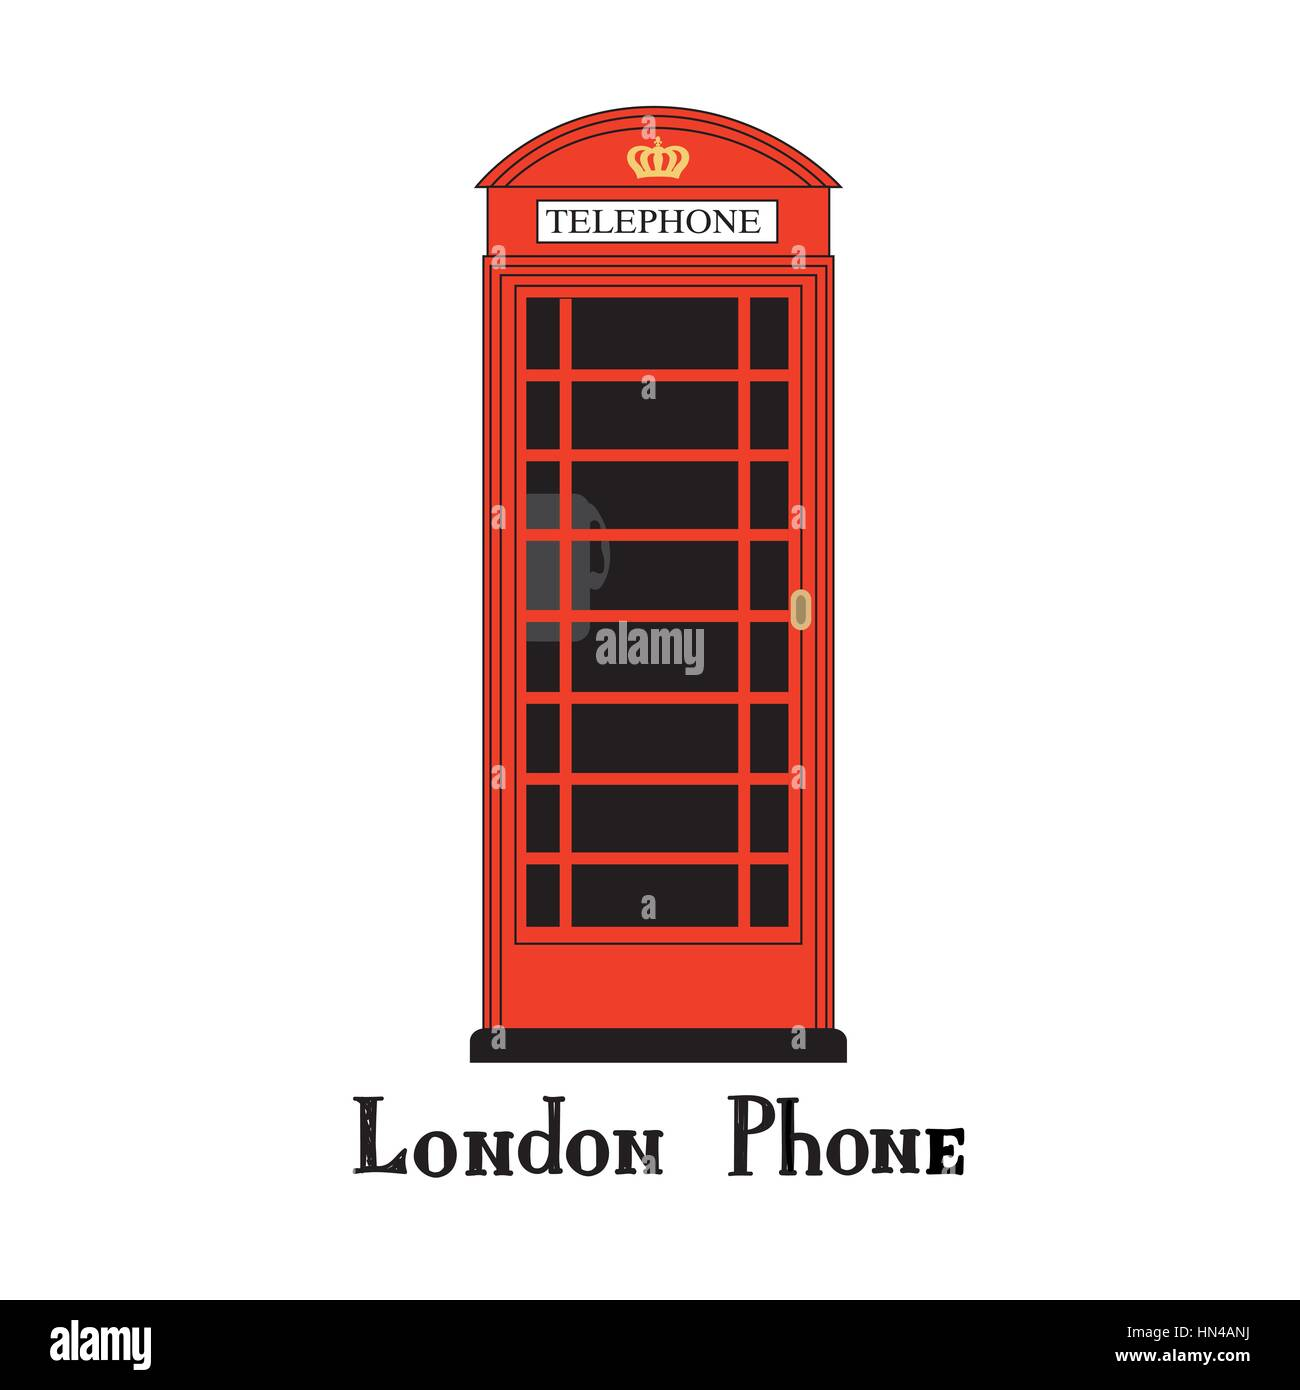 London city phone Famous London red telephone box. English landmark  The Great Britain sightseeing design element. - Stock Image